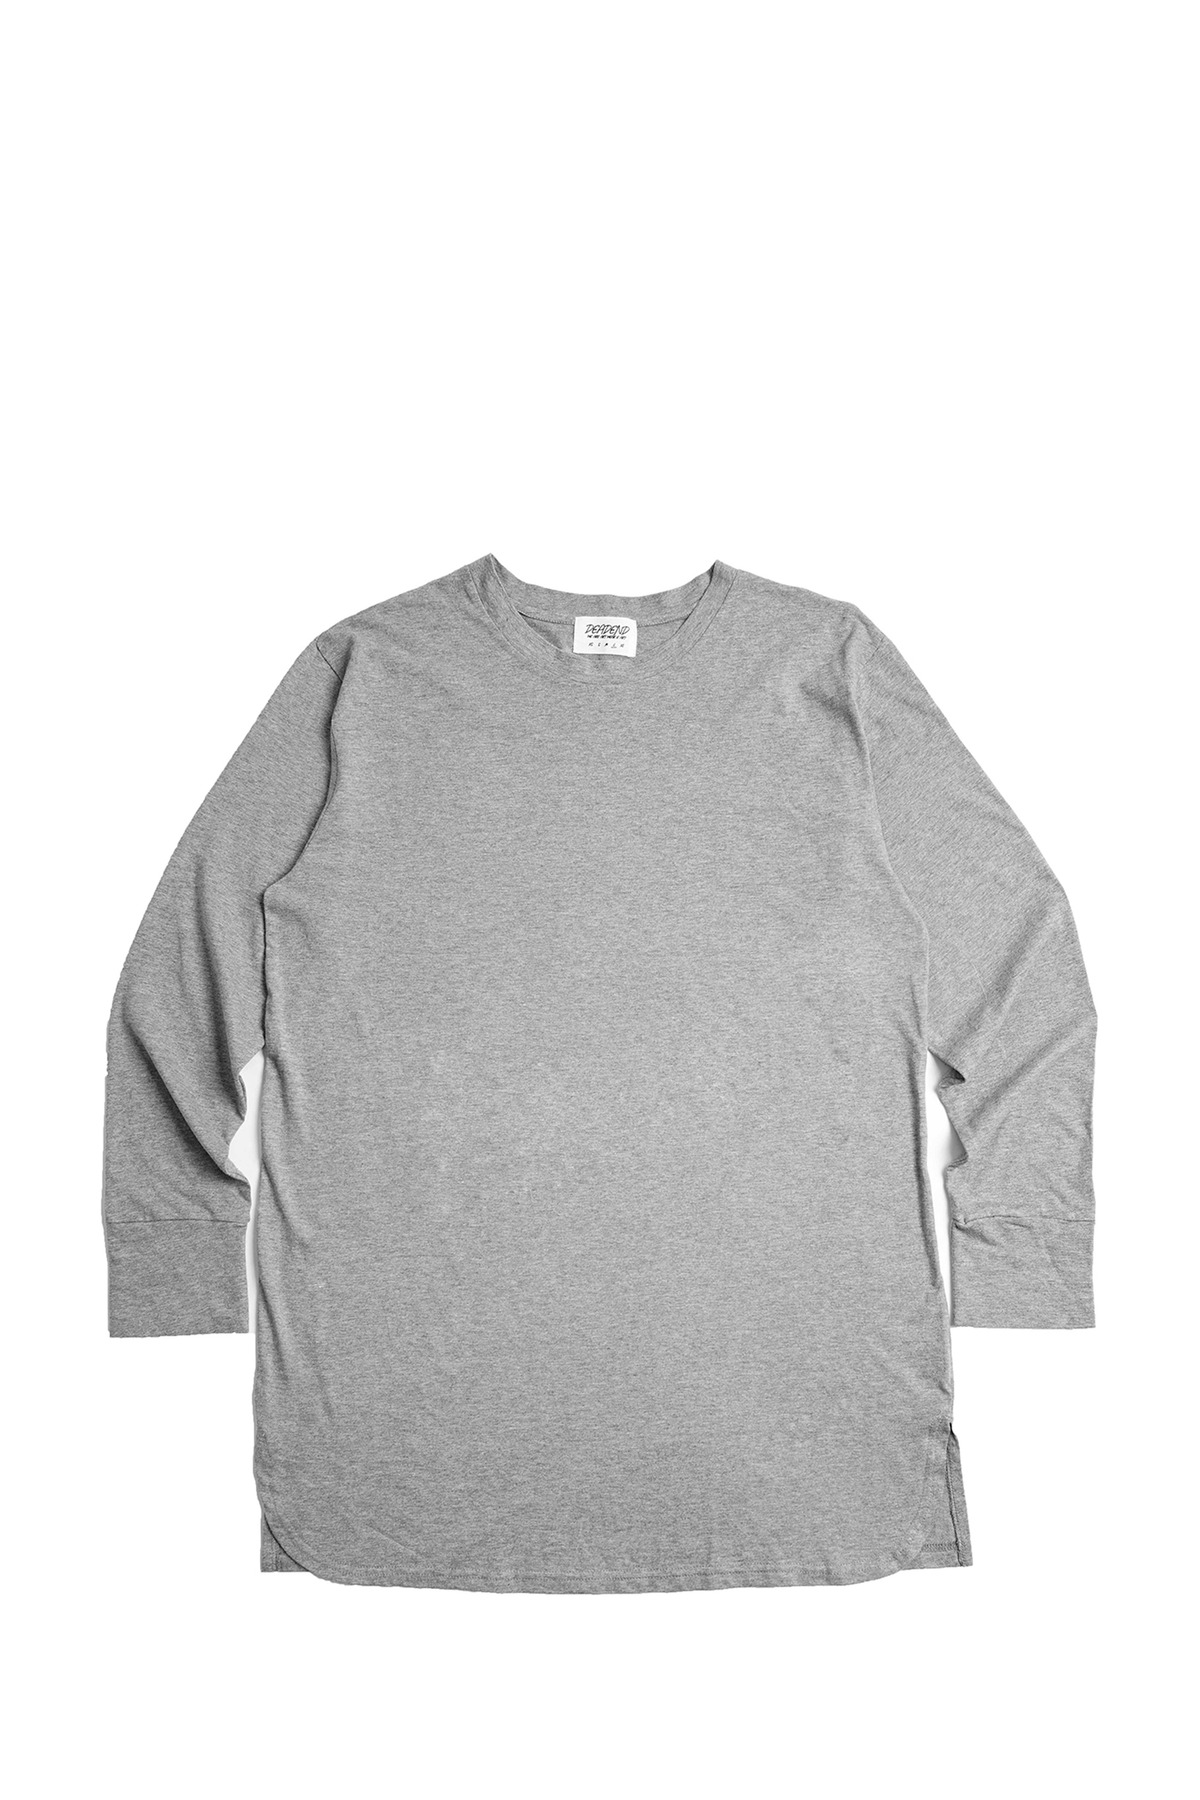 GREY SET IN RAGLAN SLEEVE